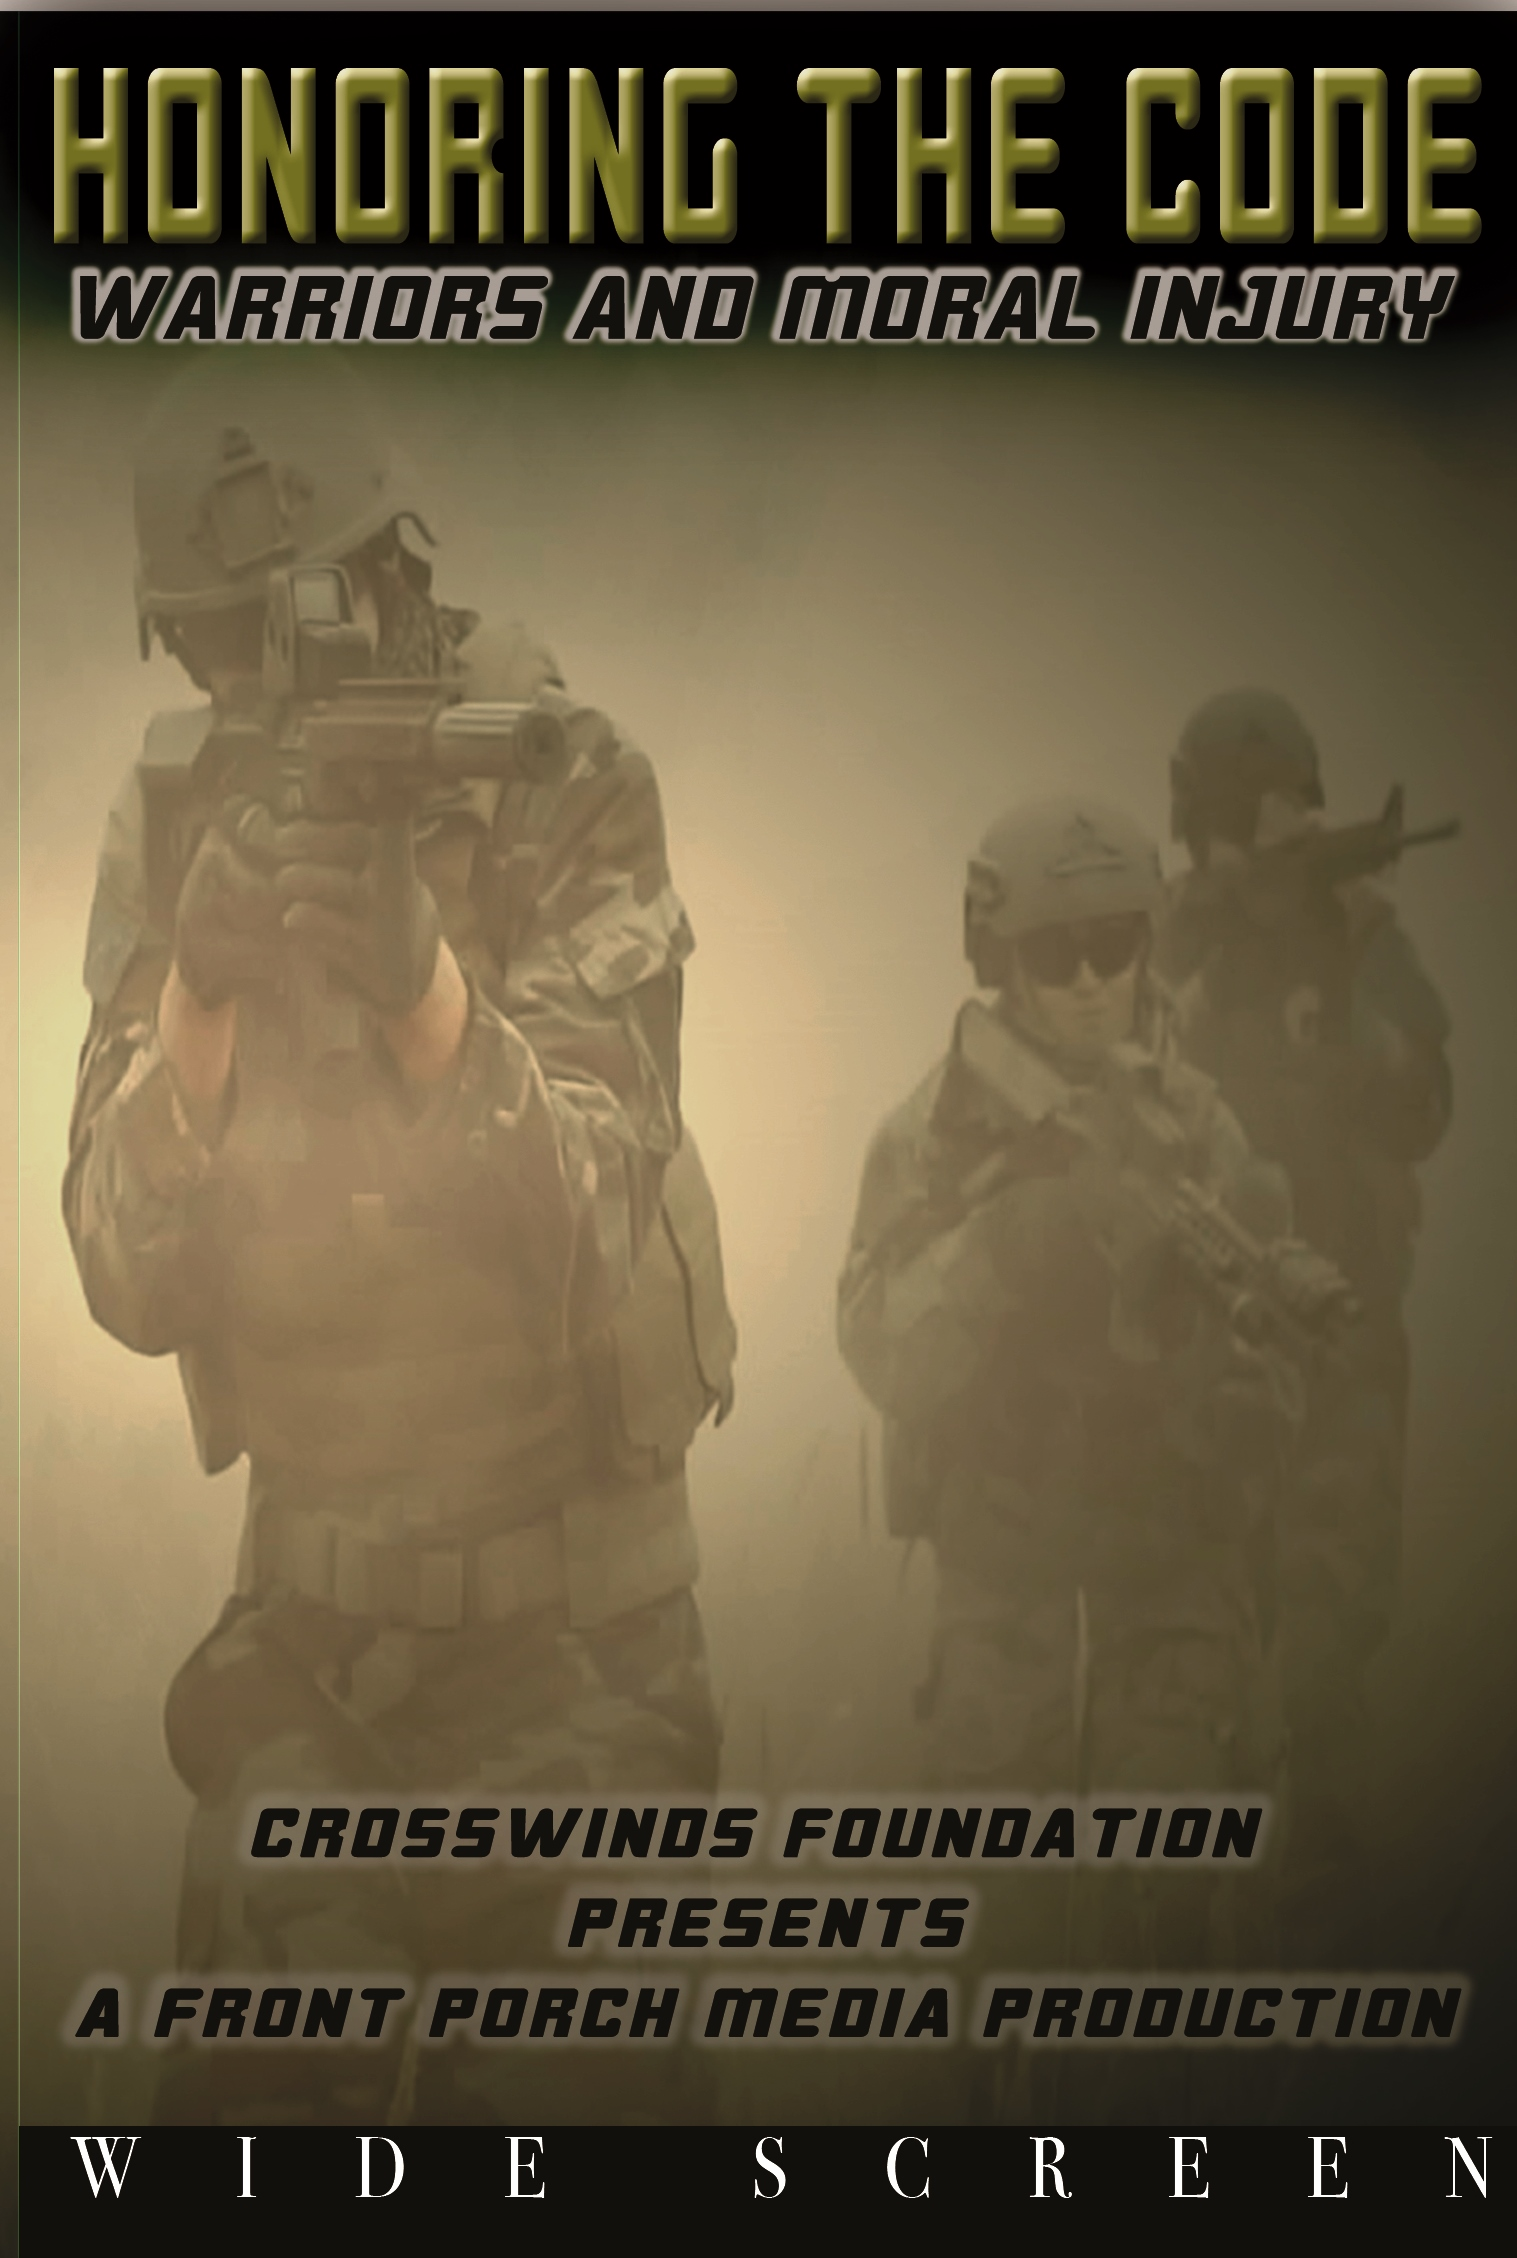 Honoring the Code: Warriors and Moral Injury DVD